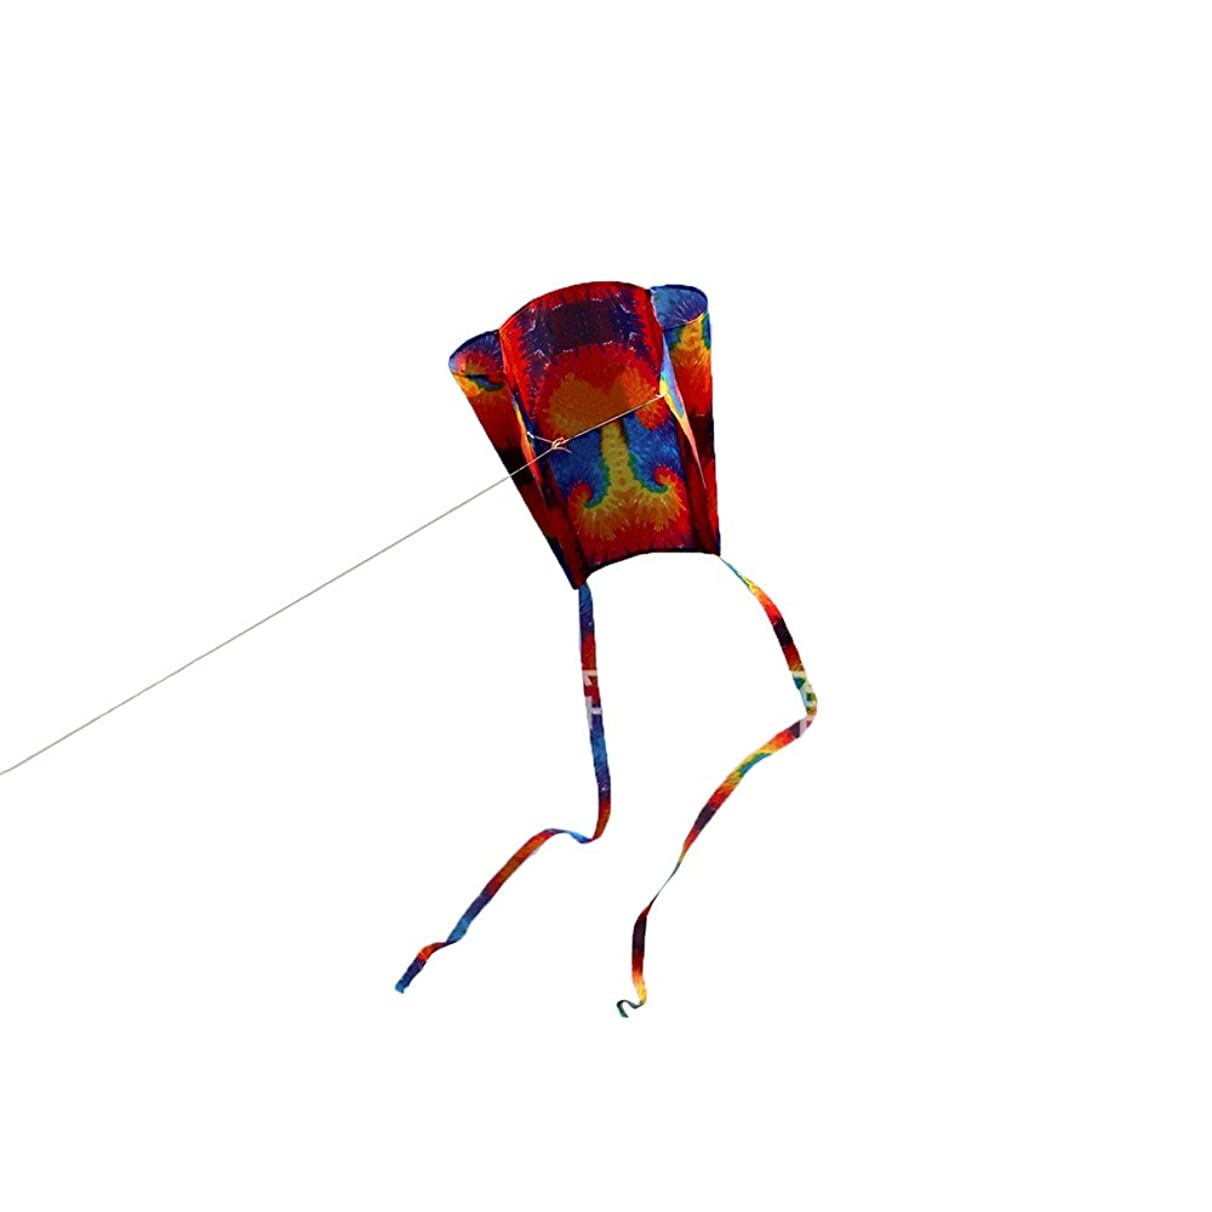 ?? Orcbee ?? _Children's Colorful Mini Pocket Kite Outdoor Fun Sports Software Kite Flying